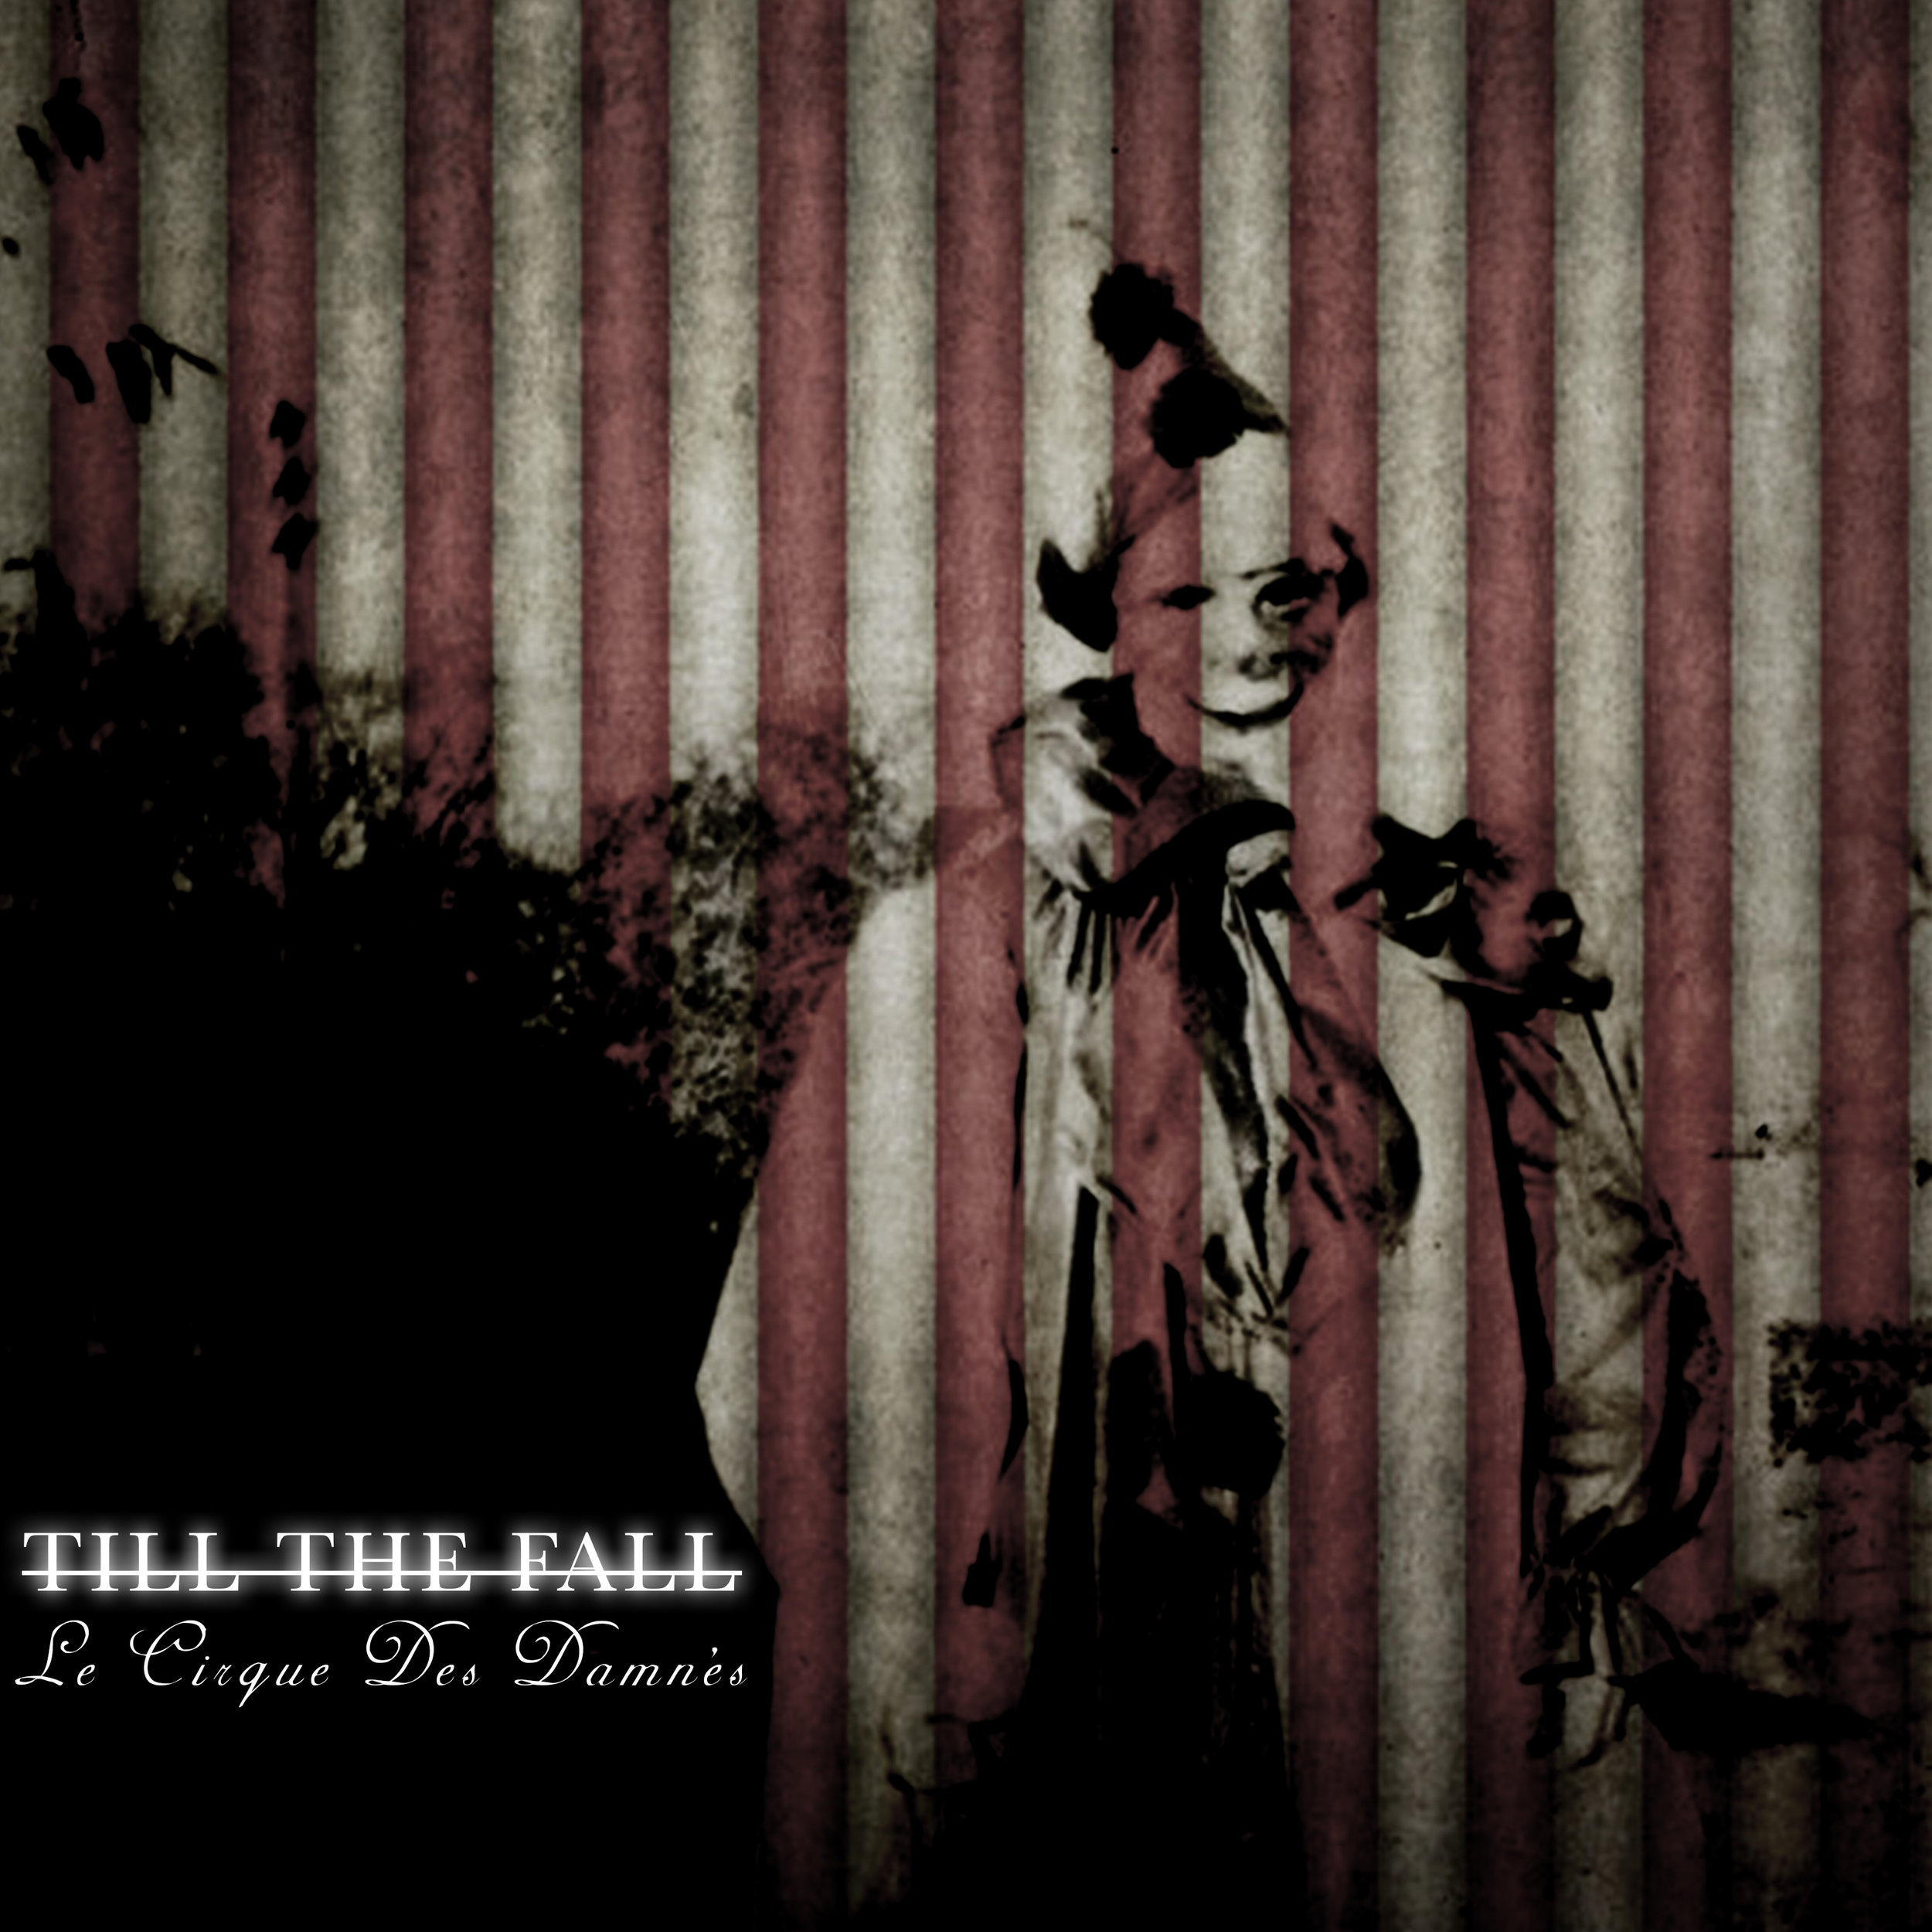 Till the Fall - Le Cirque Des Damnés - Single artwork.jpg